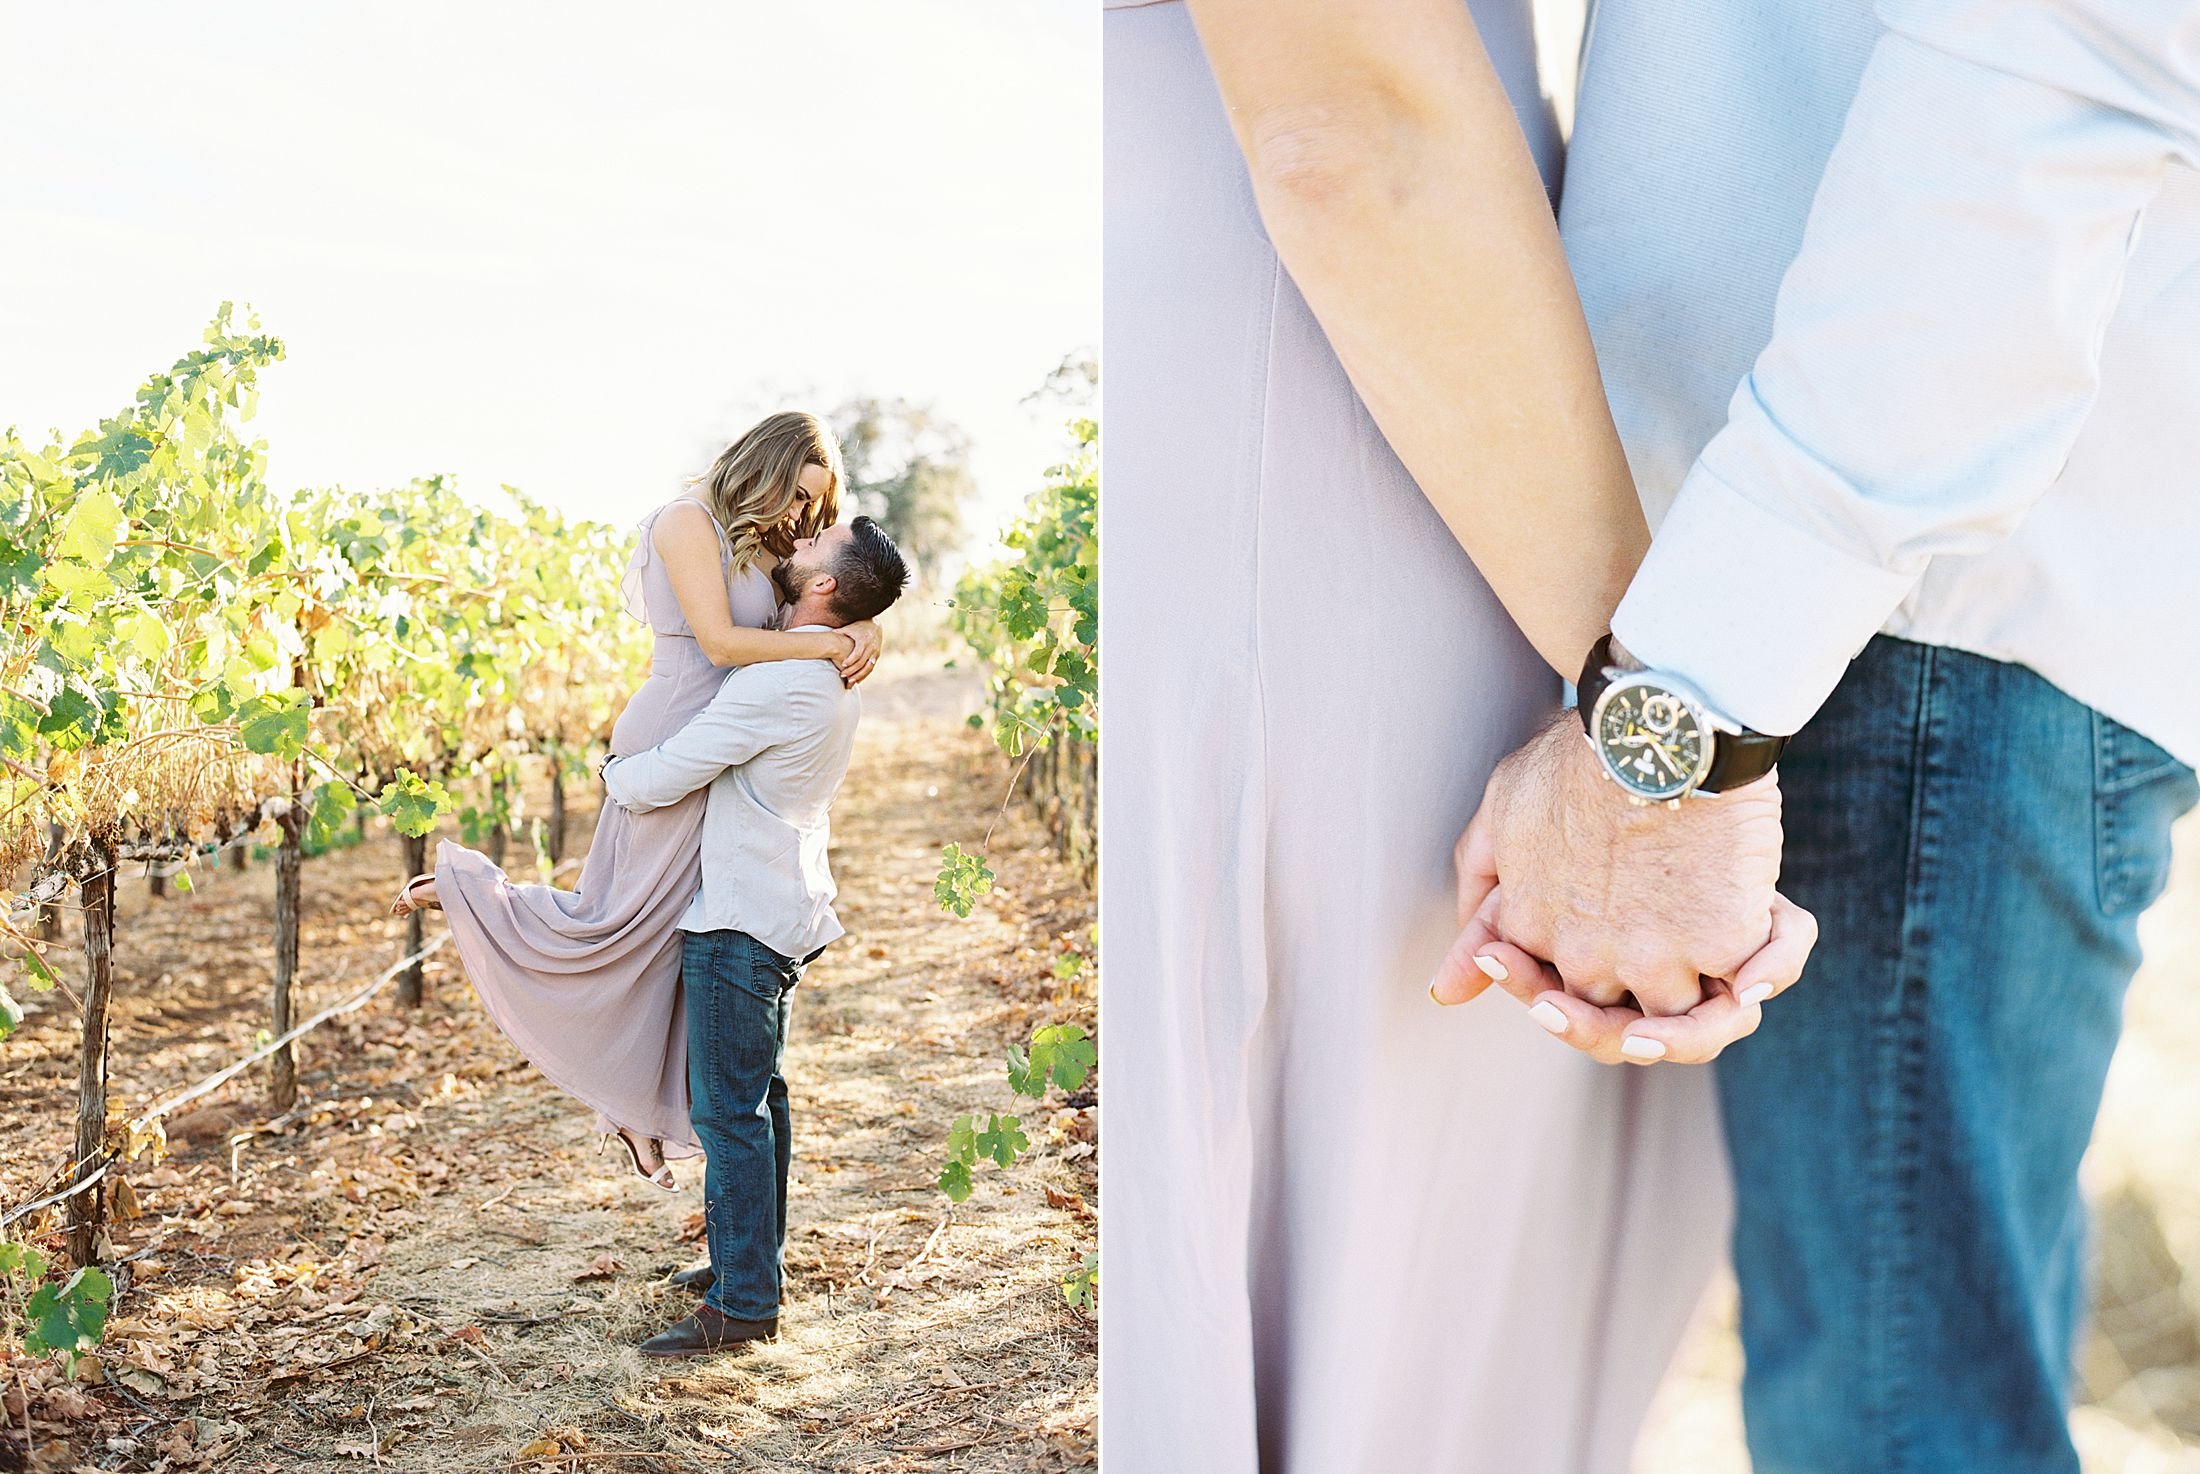 Helwig Winery Engagement Session - Steffanie and Rich - Jenn Robirds Events - Ashley Baumgartner - Sacramento Wedding Photographer - Private Estate Wedding Photographer - Helwig WInery Wedding_0079.jpg